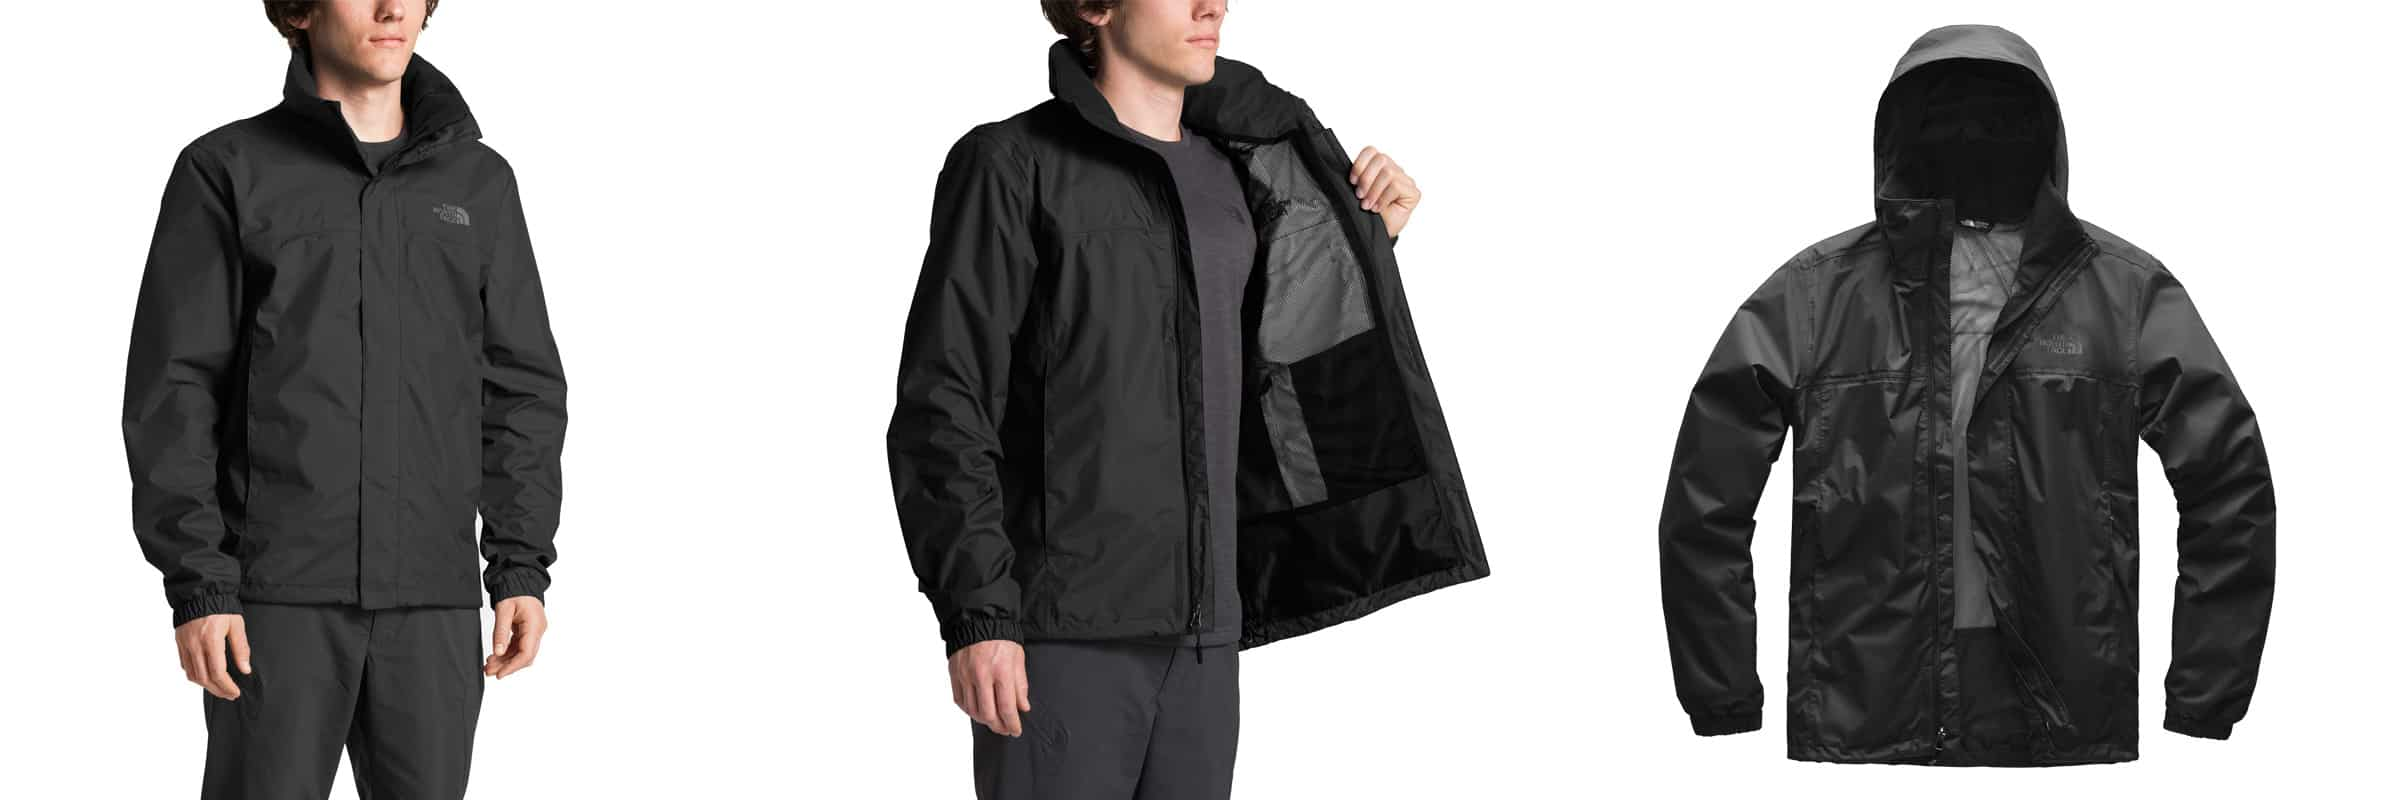 0ce256e409 The North Face : Manteau de pluie Resolve 2 vs Venture 2 | Altitude Blog